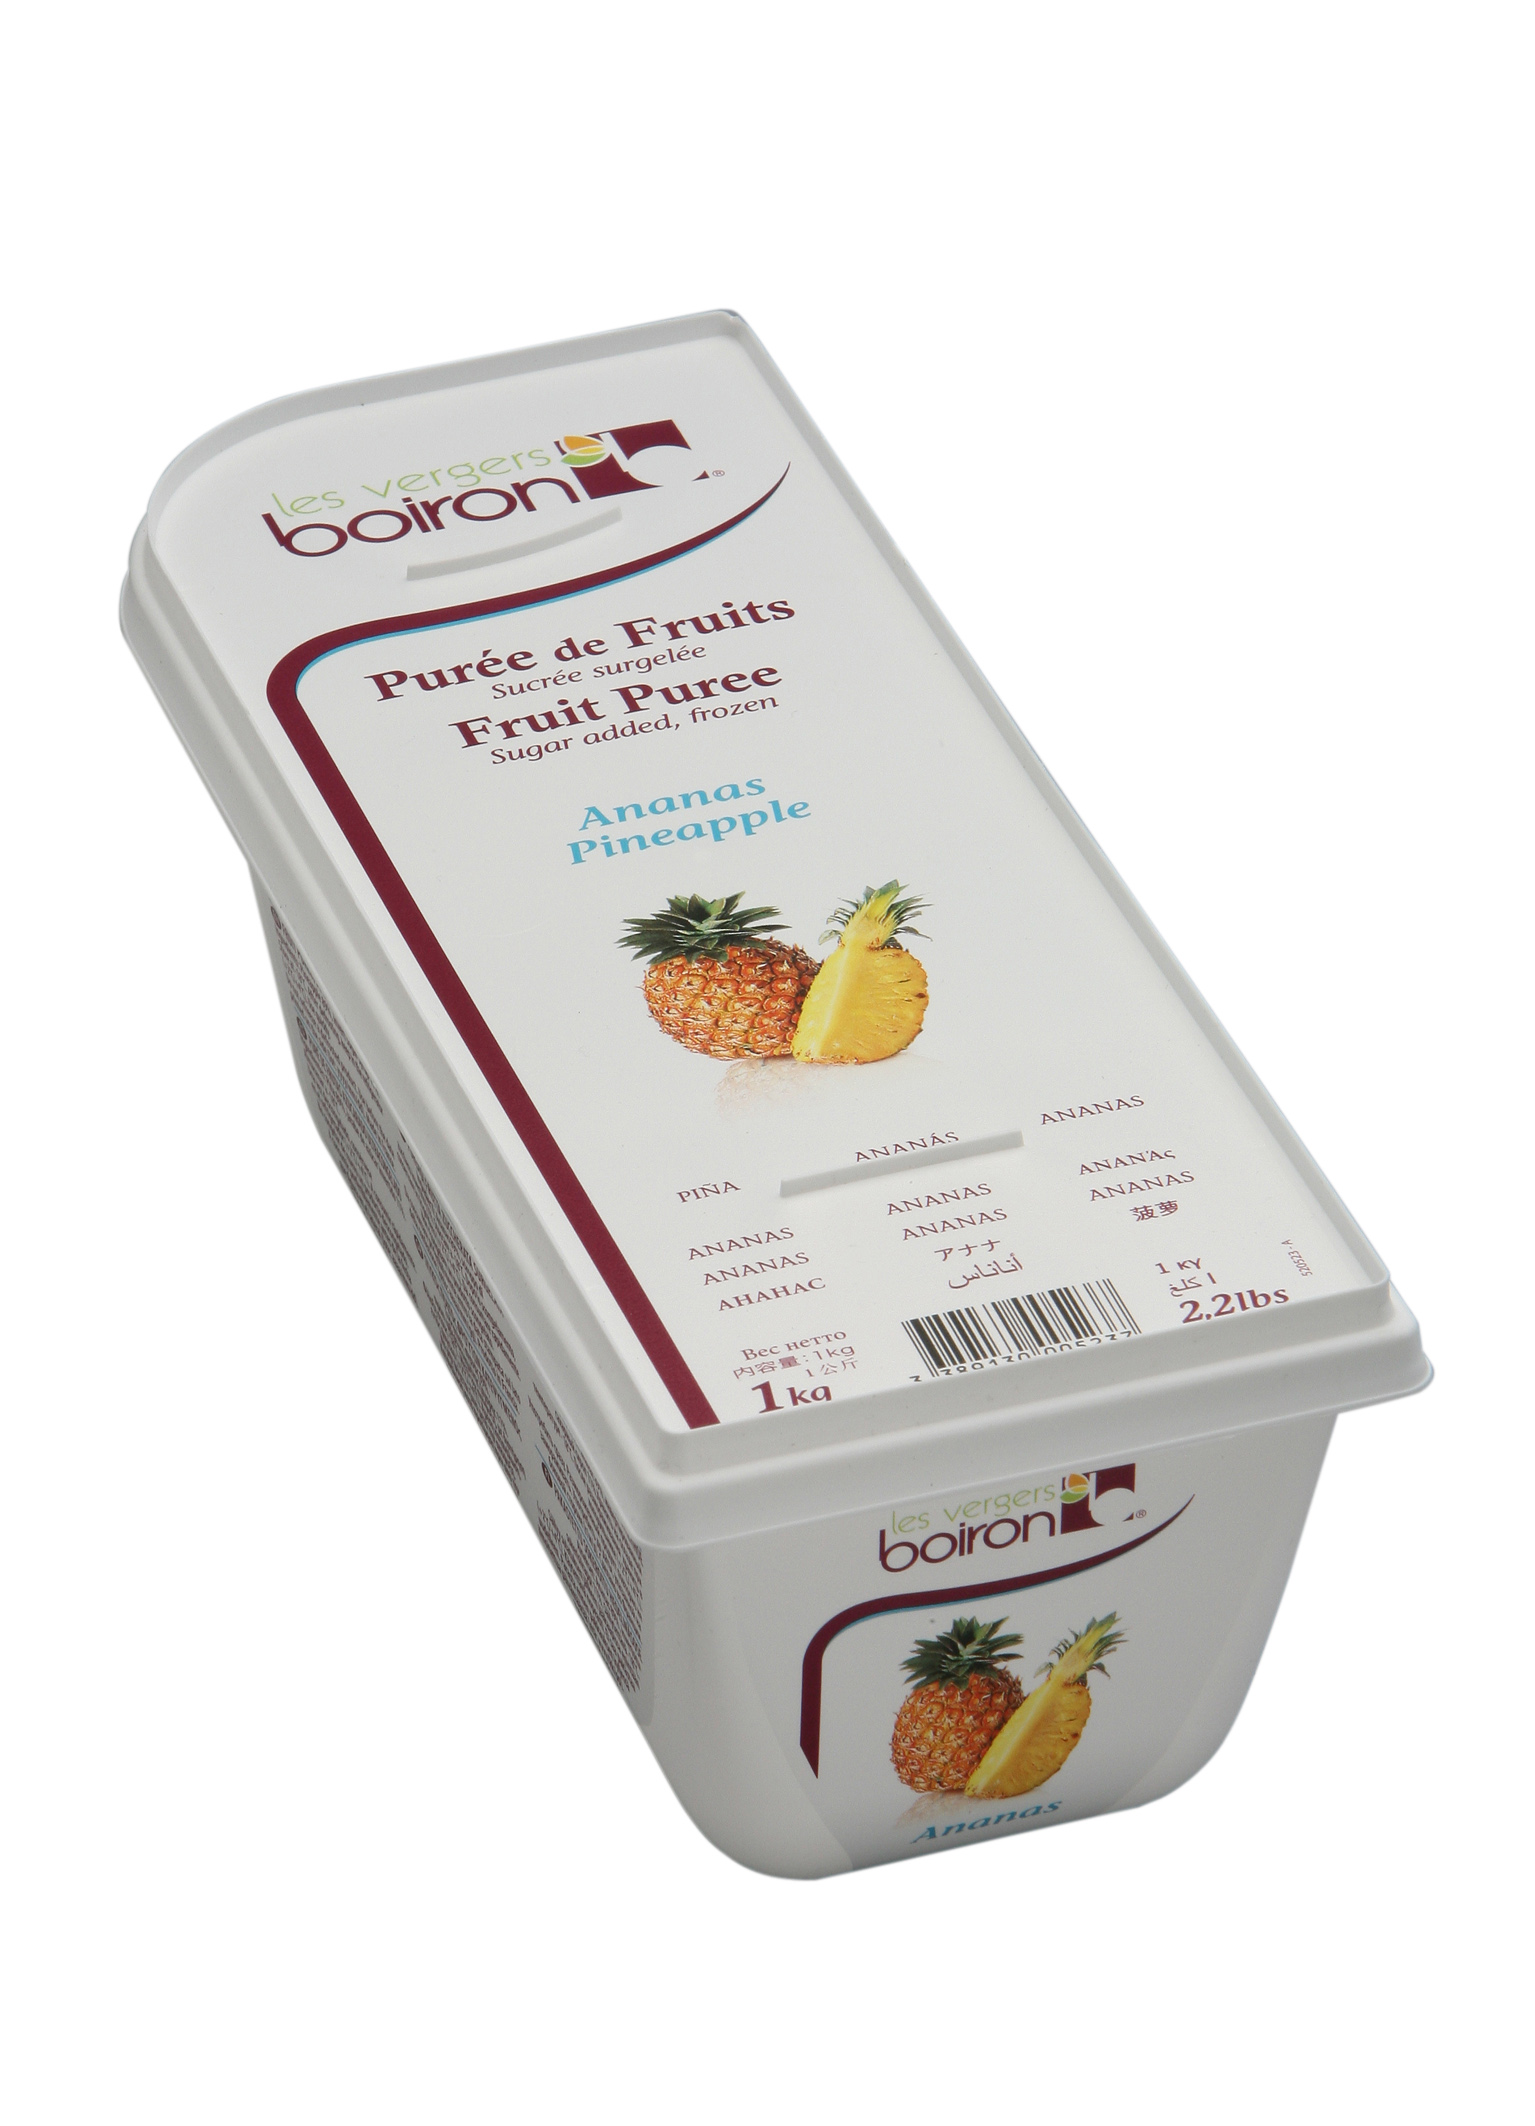 Boiron pineapple puree 1 kg